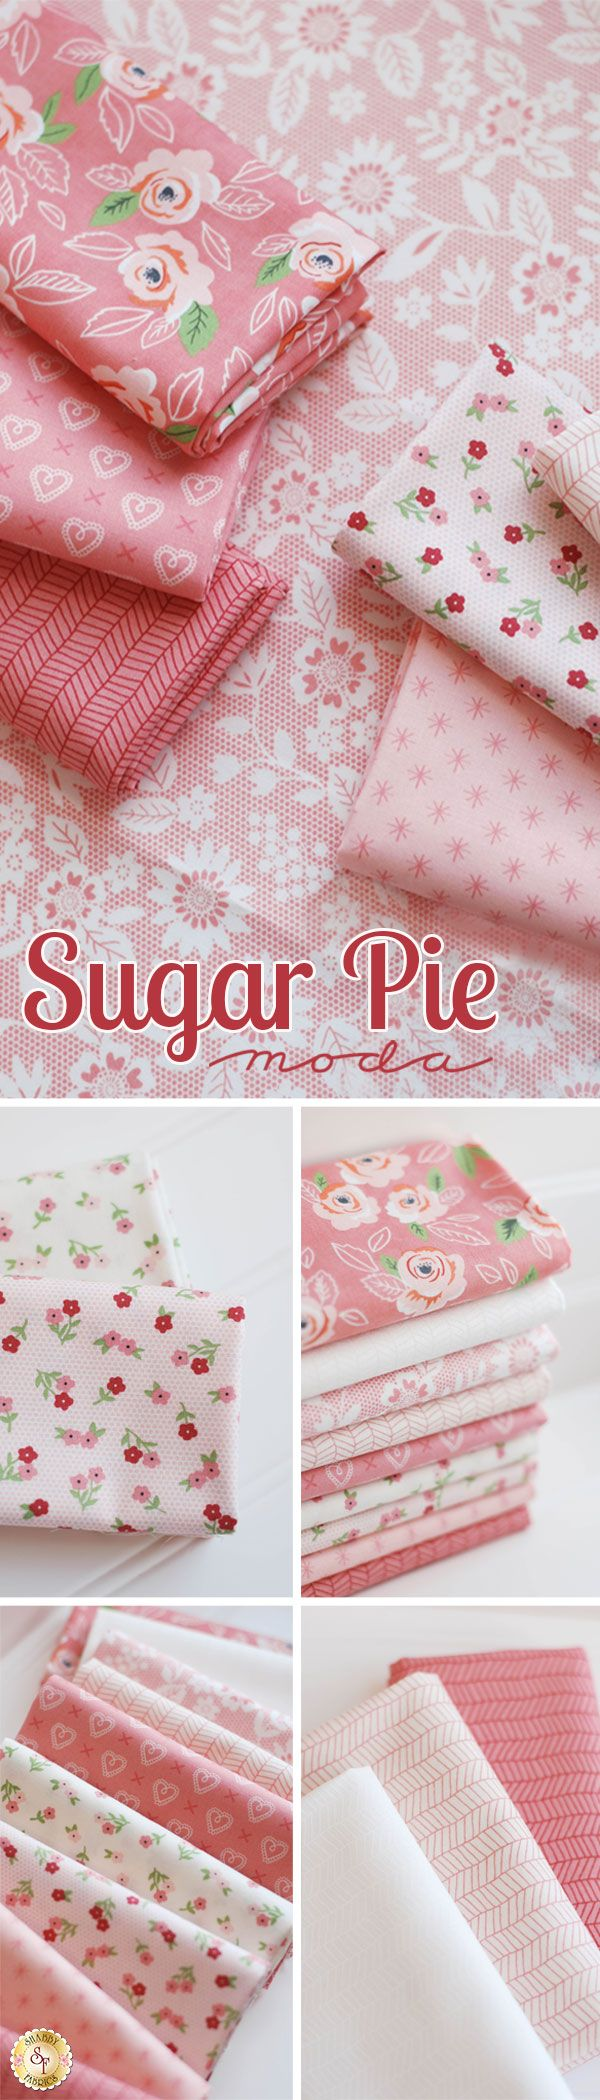 Sugar Pie by Lella Boutique from Moda Fabrics The Sugar Pie collection by Lella Boutique for Moda Fabrics blends beautiful pinks and creams to create a lovely collection that's perfect for any occasion. This collection features a range of classic floral prints and even hearts and stars.